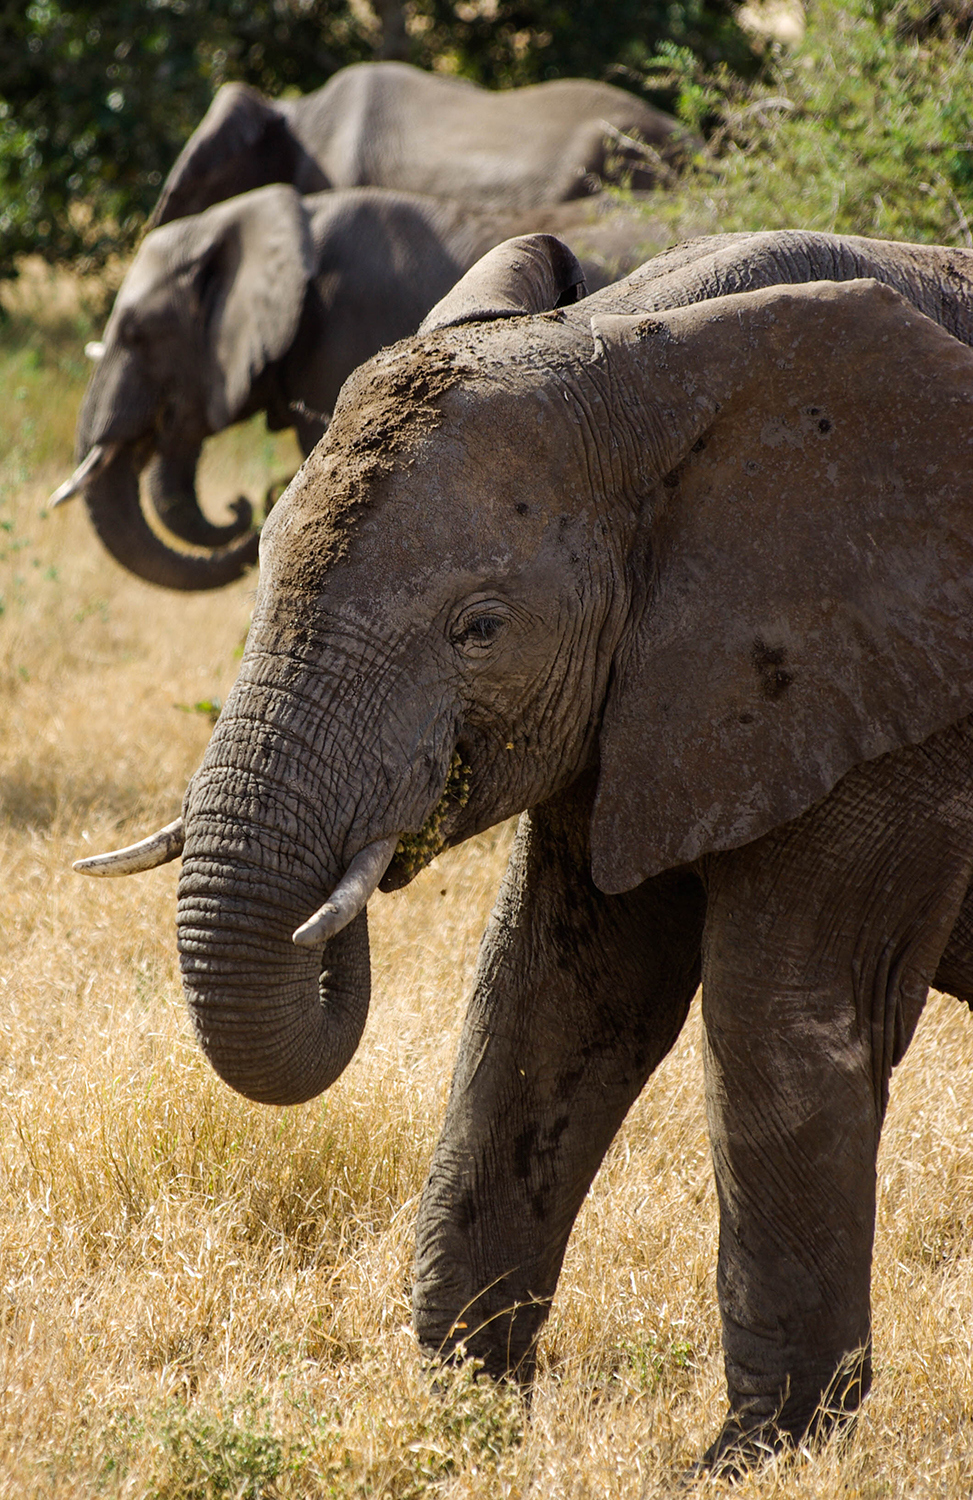 <p>Three elephants curl their trunks and eat in sync.</p>